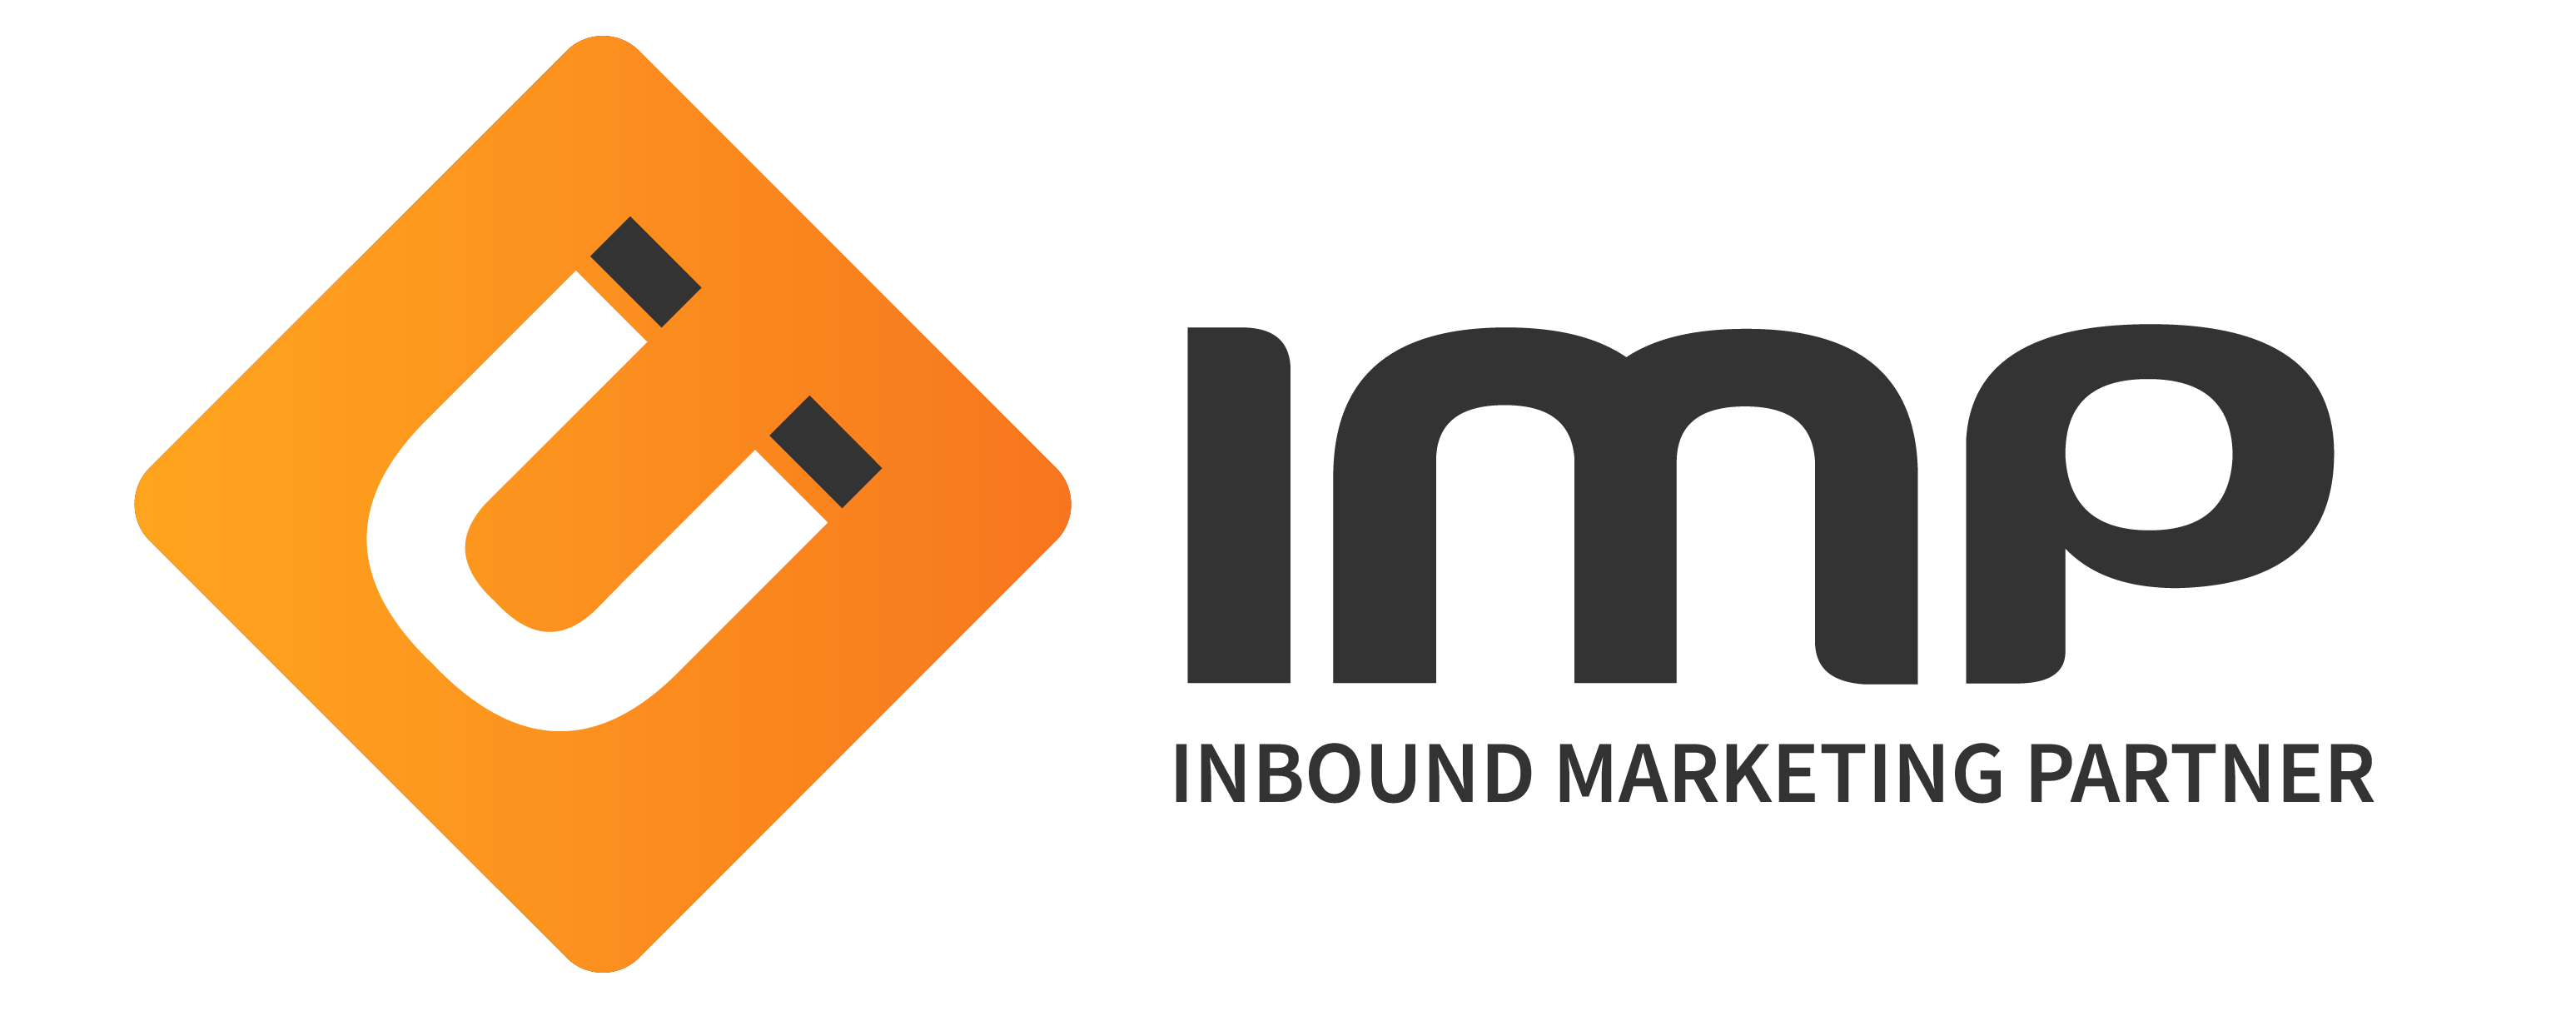 inbound marketing partner impvn